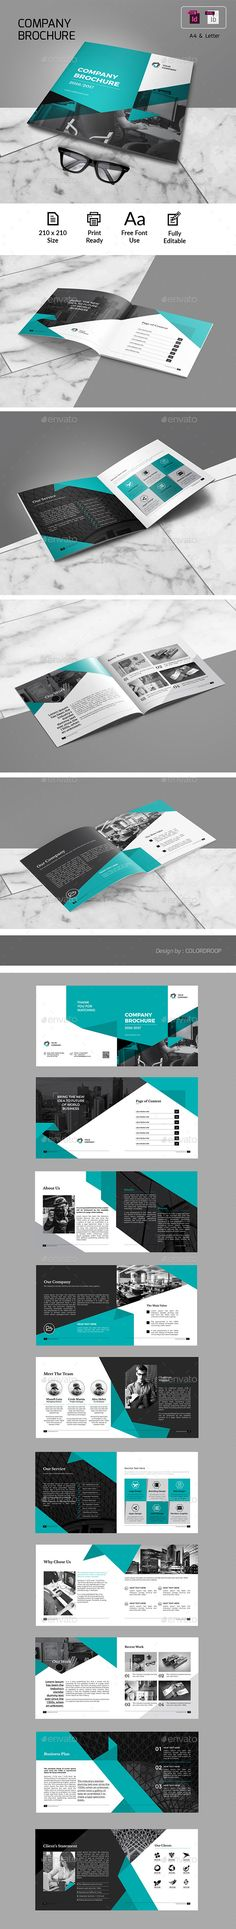 Corporate bi fold square brochure 06 brochure template for Company profile brochure template